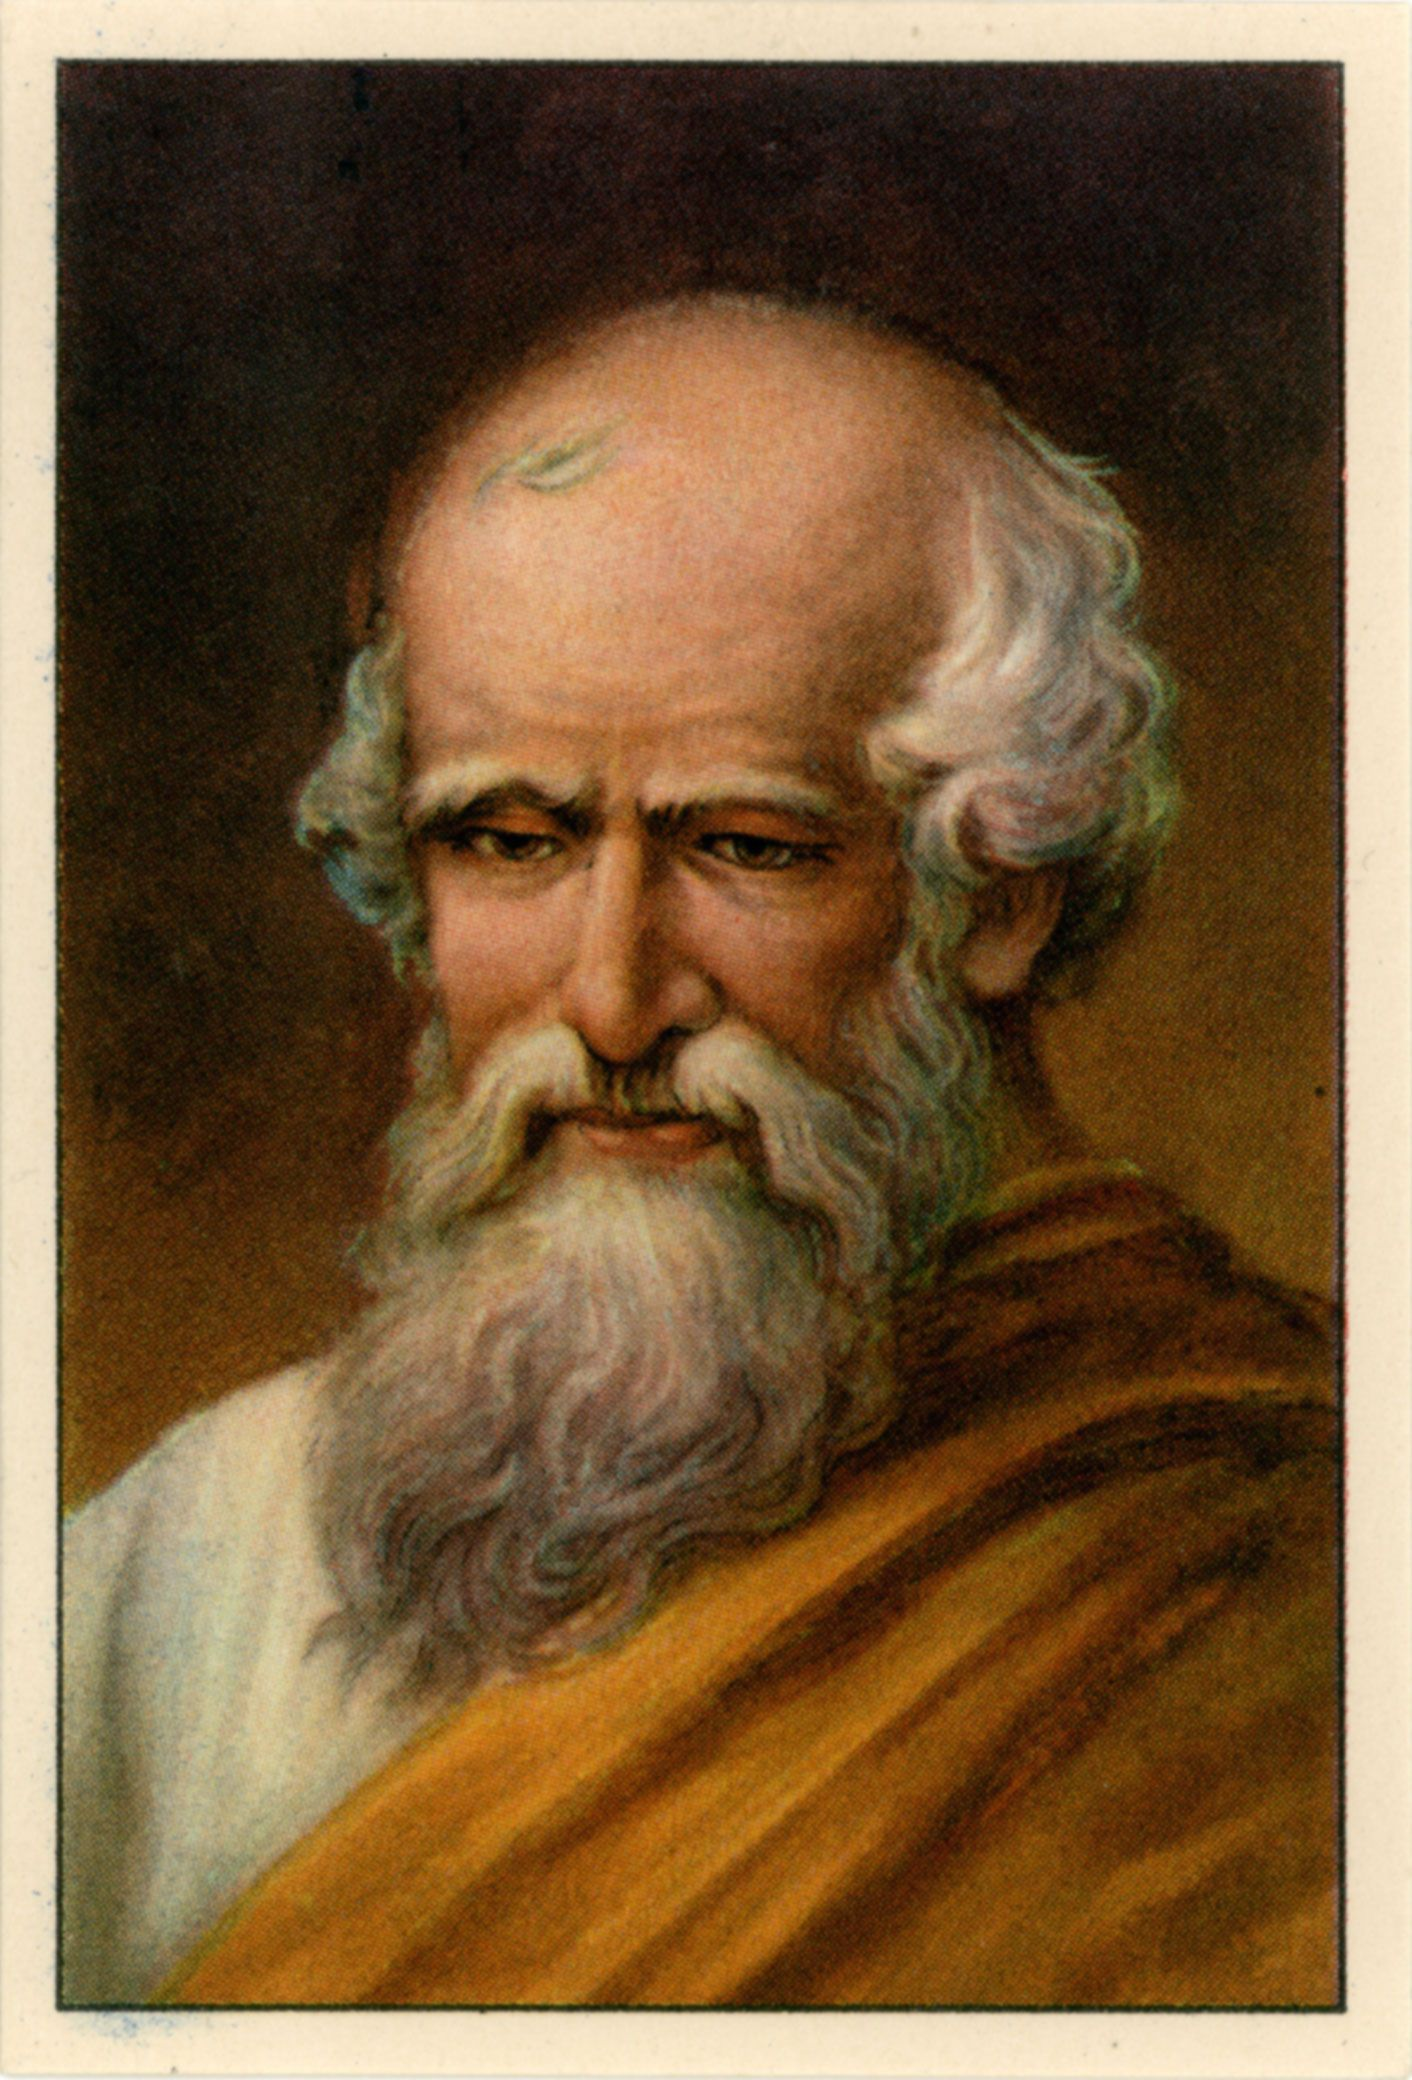 """Archimedes: """"Give me a place to stand, and I shall move the Earth with it"""" - Repinned by UXSherlock."""